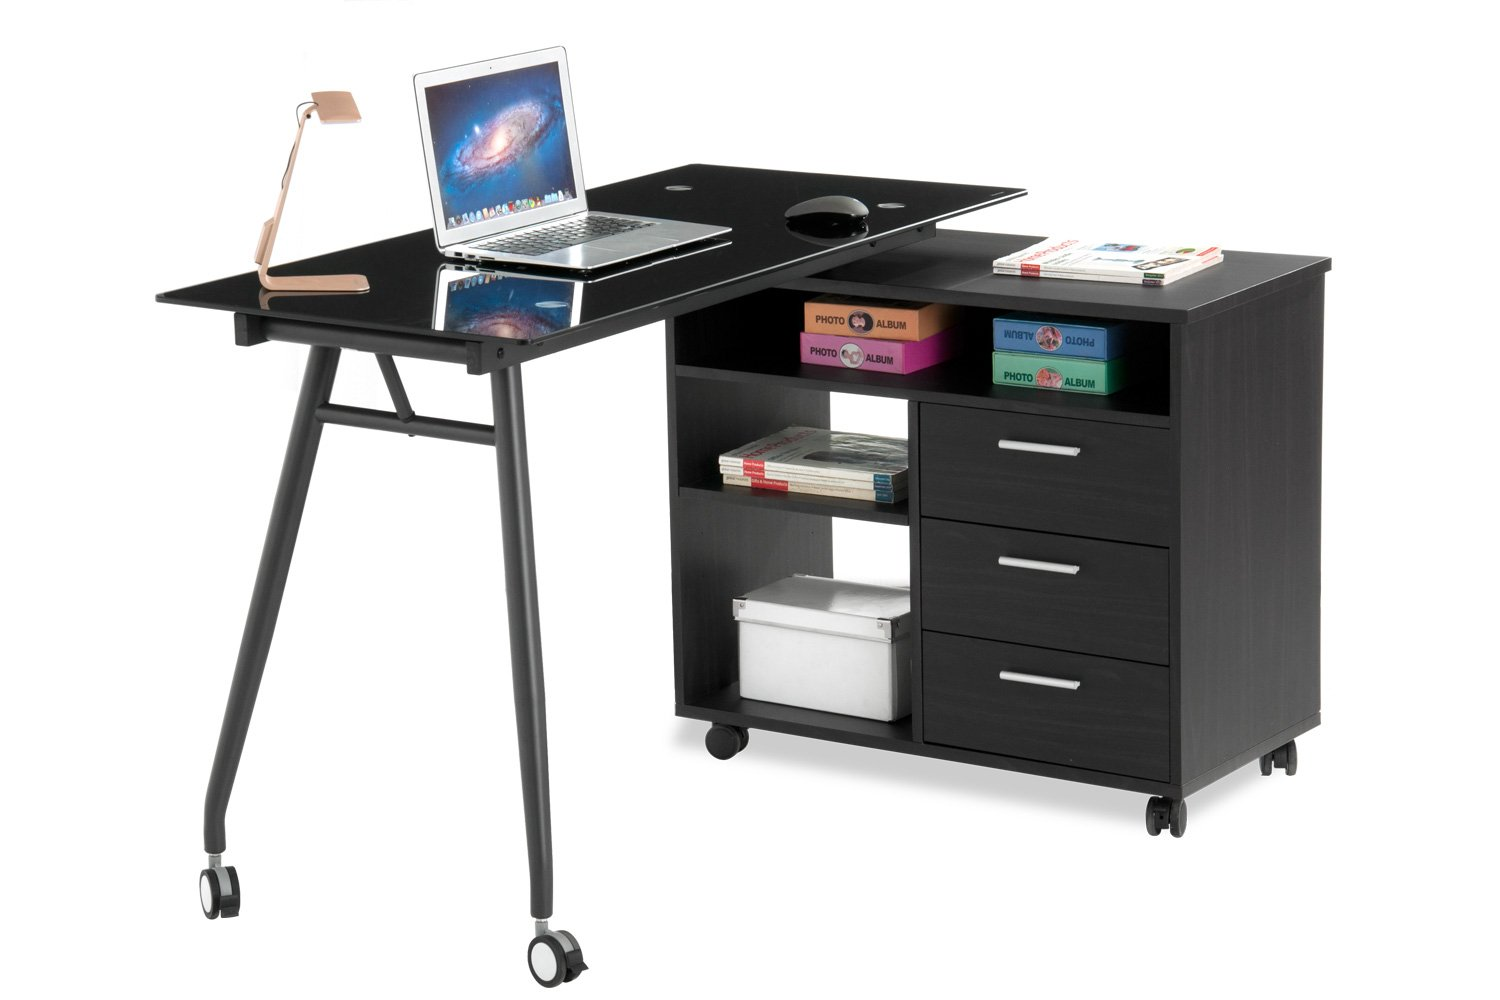 ProHT L-Shape Black Glass Portable Office Desk (05007A): Computer/PC/Laptop Desk/Table/Workstation w/ Drawers and Wheels, Chocolate & Charcoal Black. Designed to the Highest Quality.